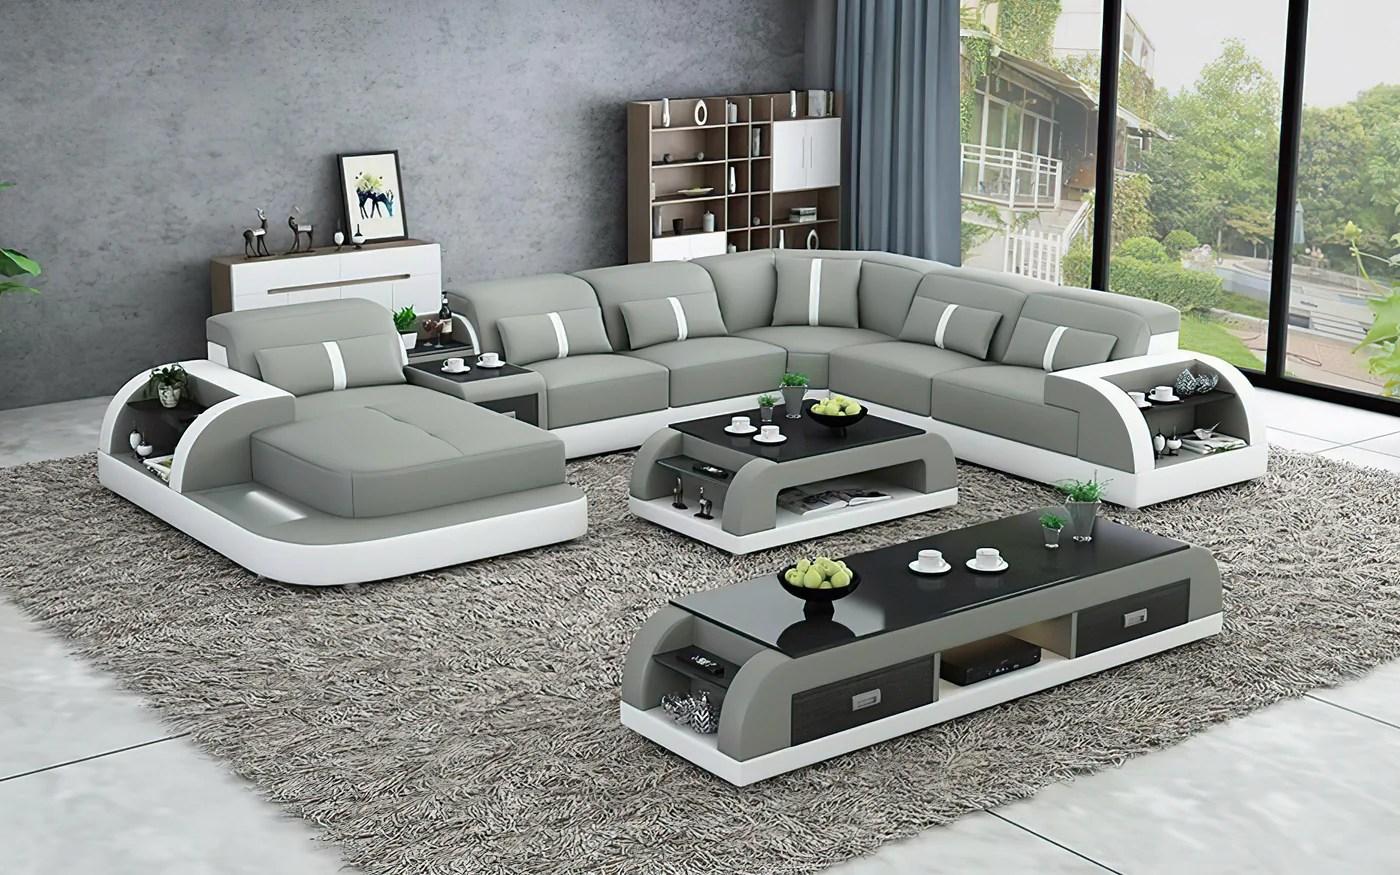 Modern Blaylock Leather Sectional Sofa U Shape Storage Jubilee Furniture Stores Las Vegas